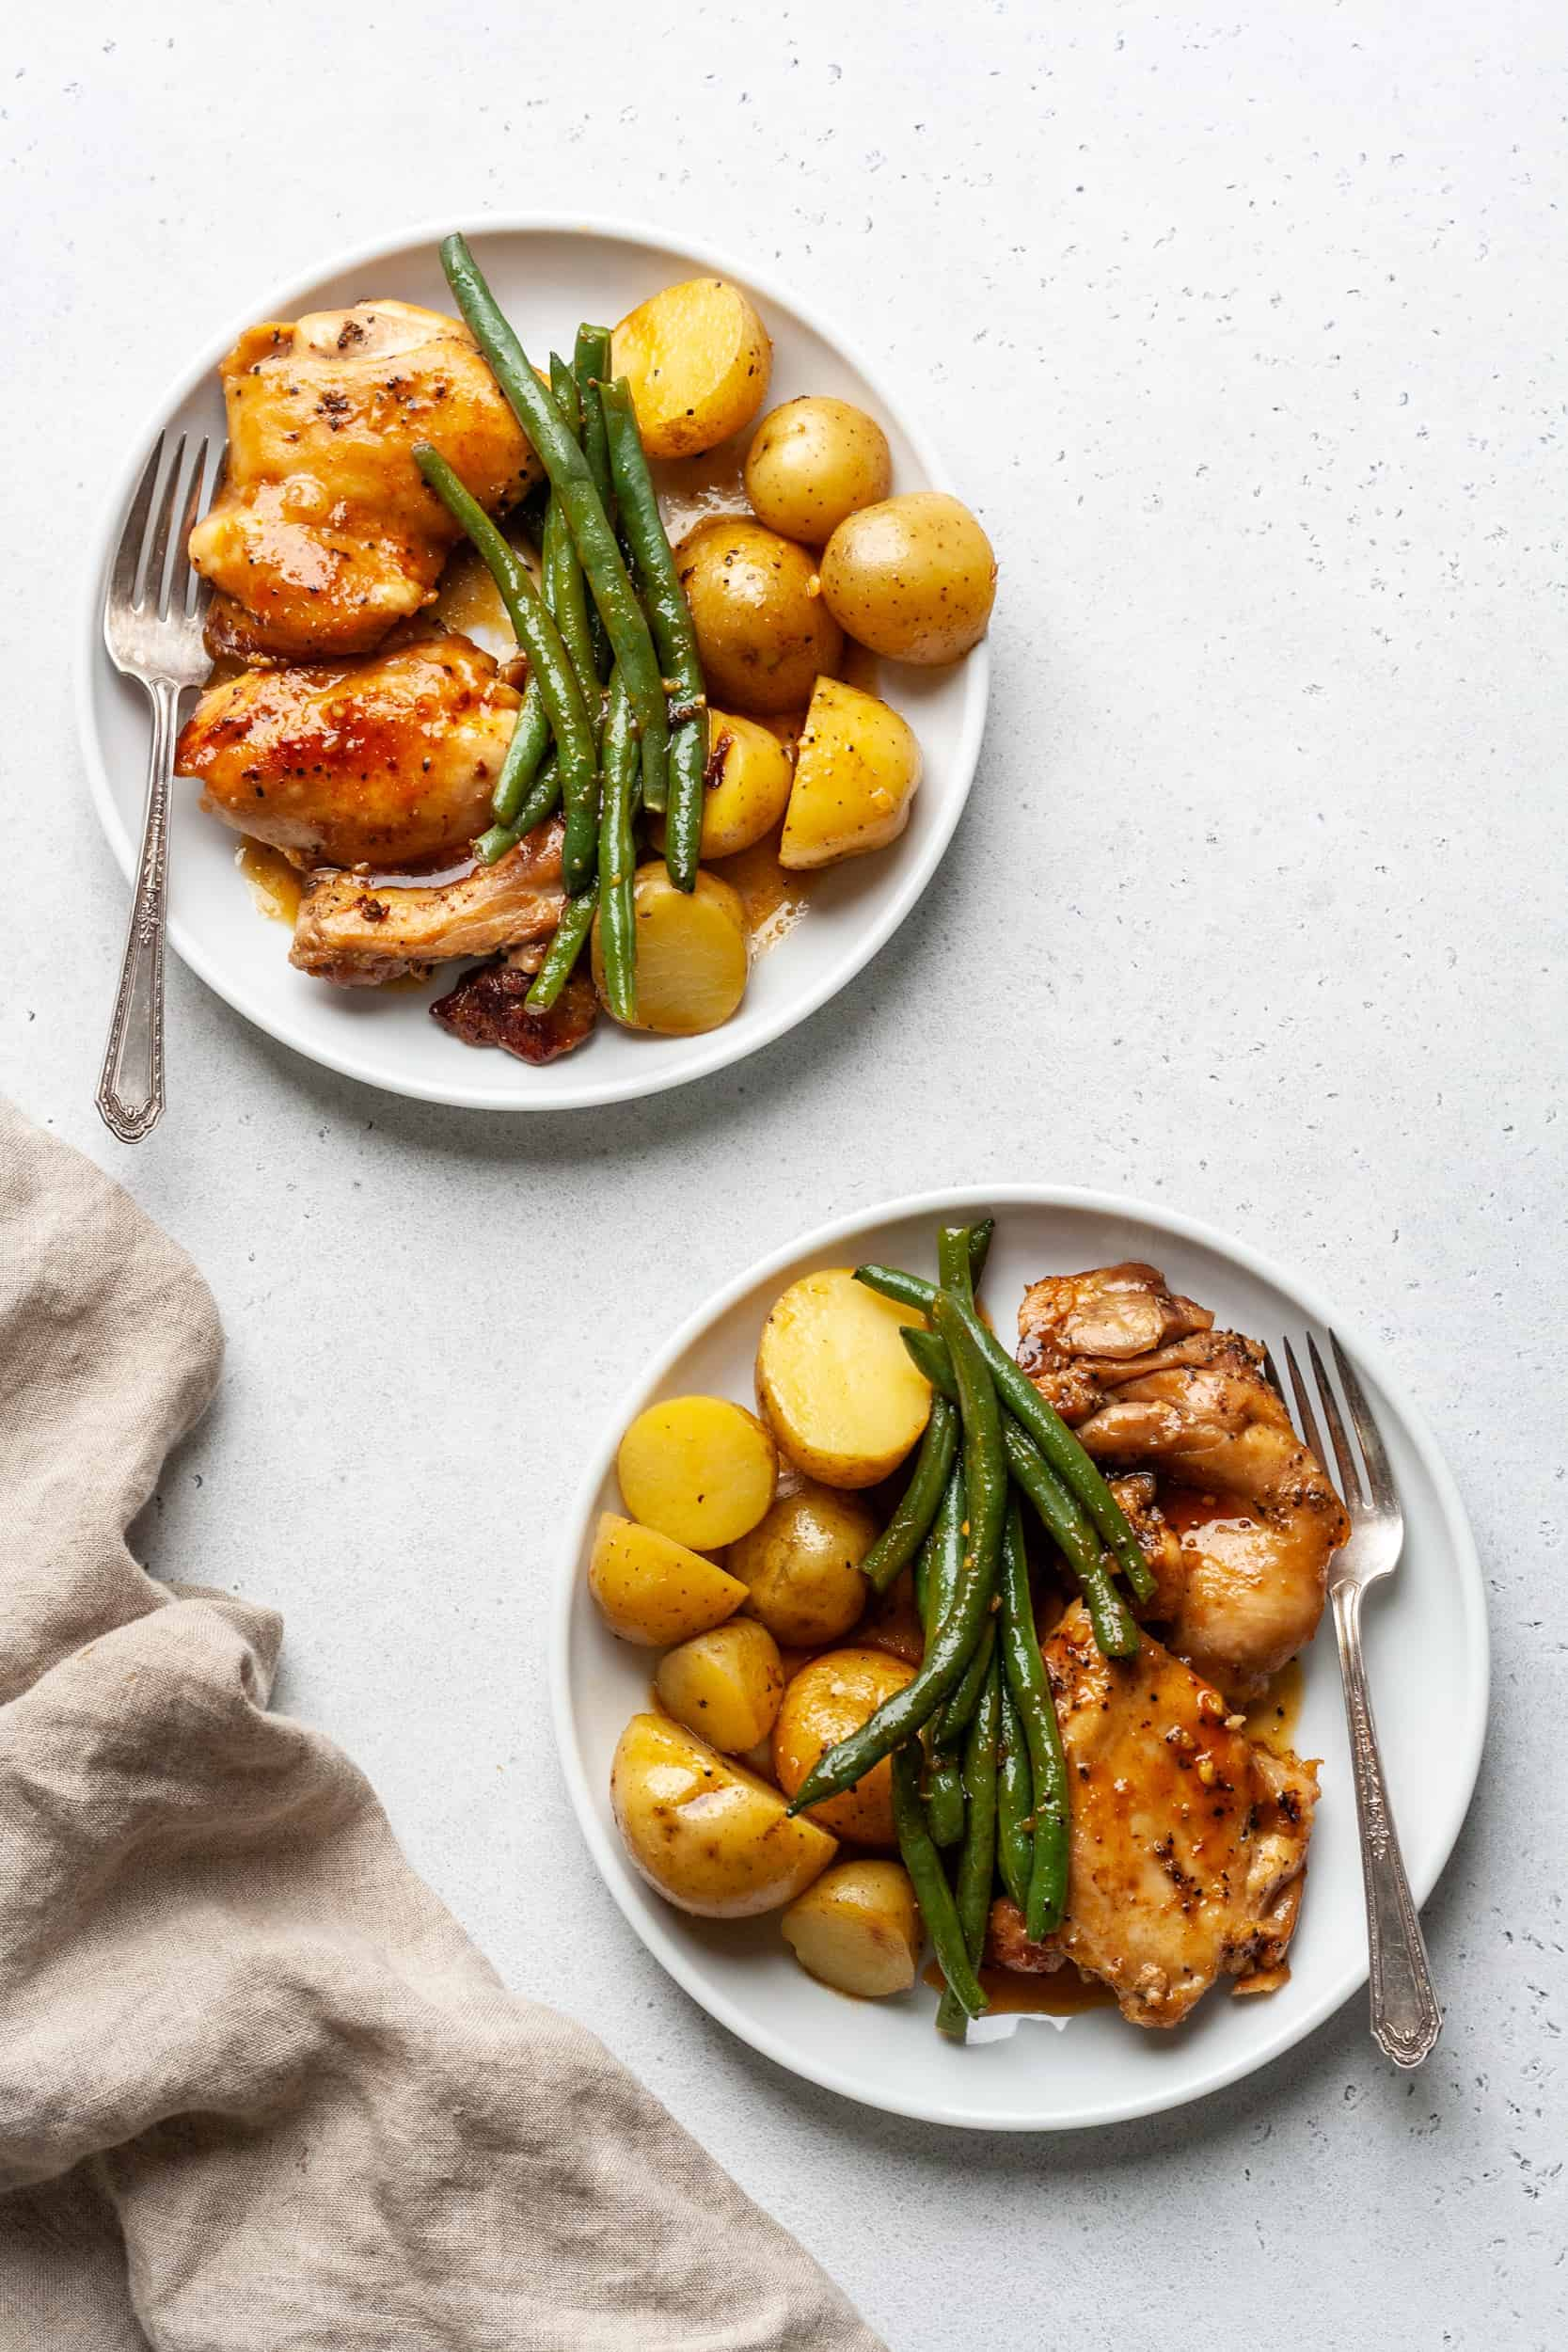 Two plates of chicken and potatoes with green beans.